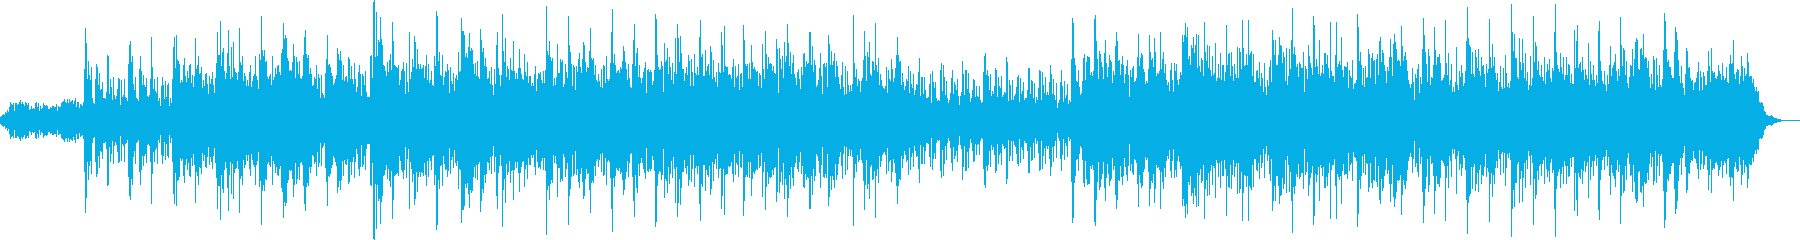 Refreshing and gentle healing BGM's reproduced waveform